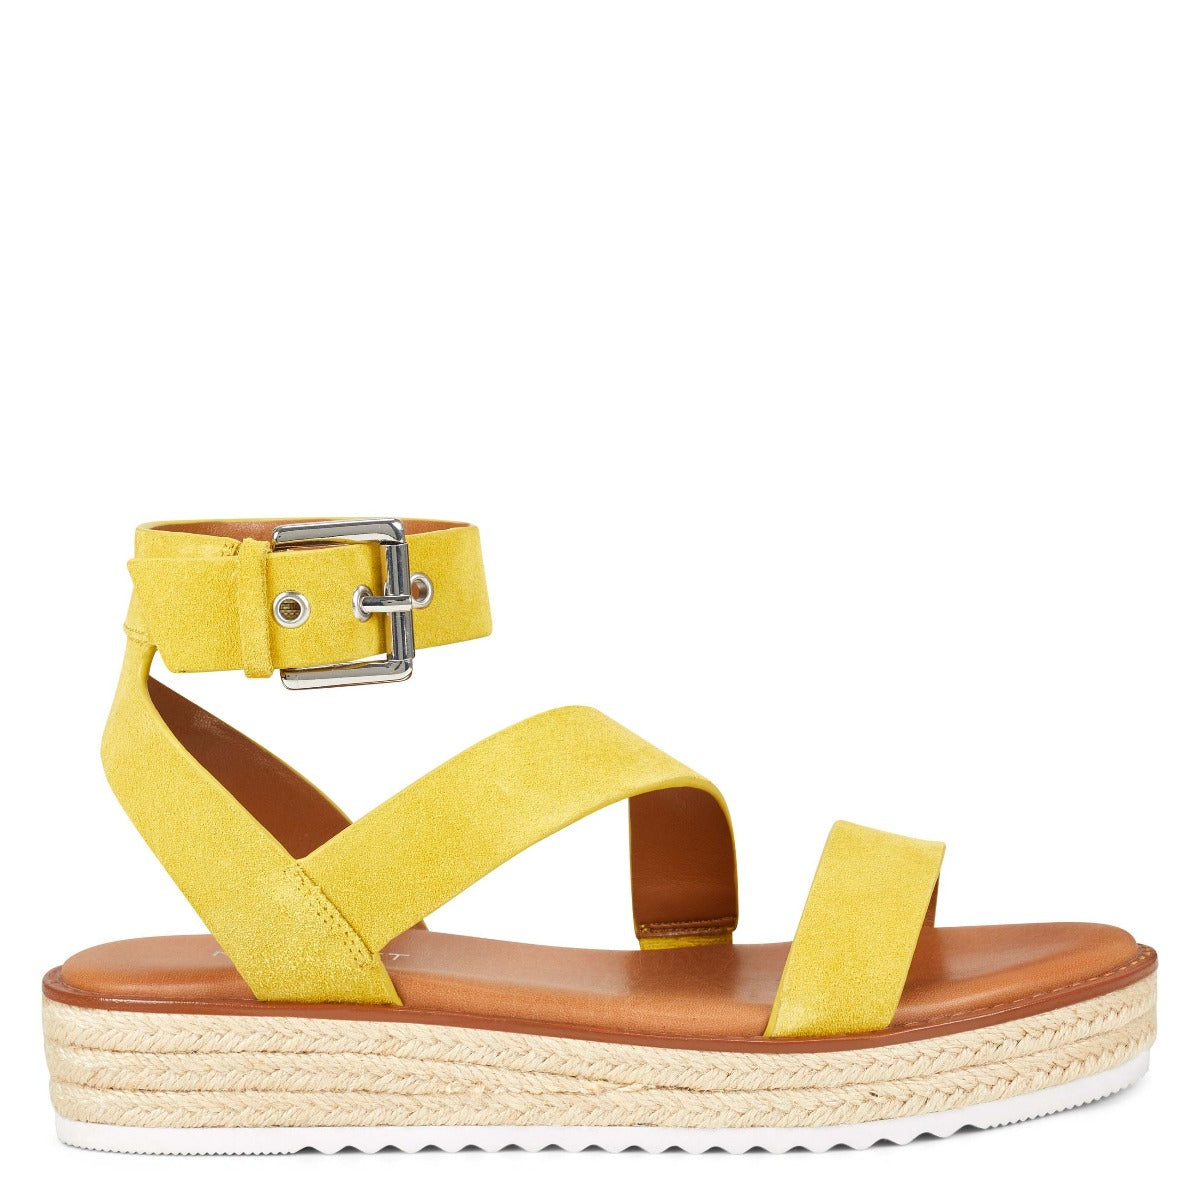 Chaya Espadrille Wedge Sandals